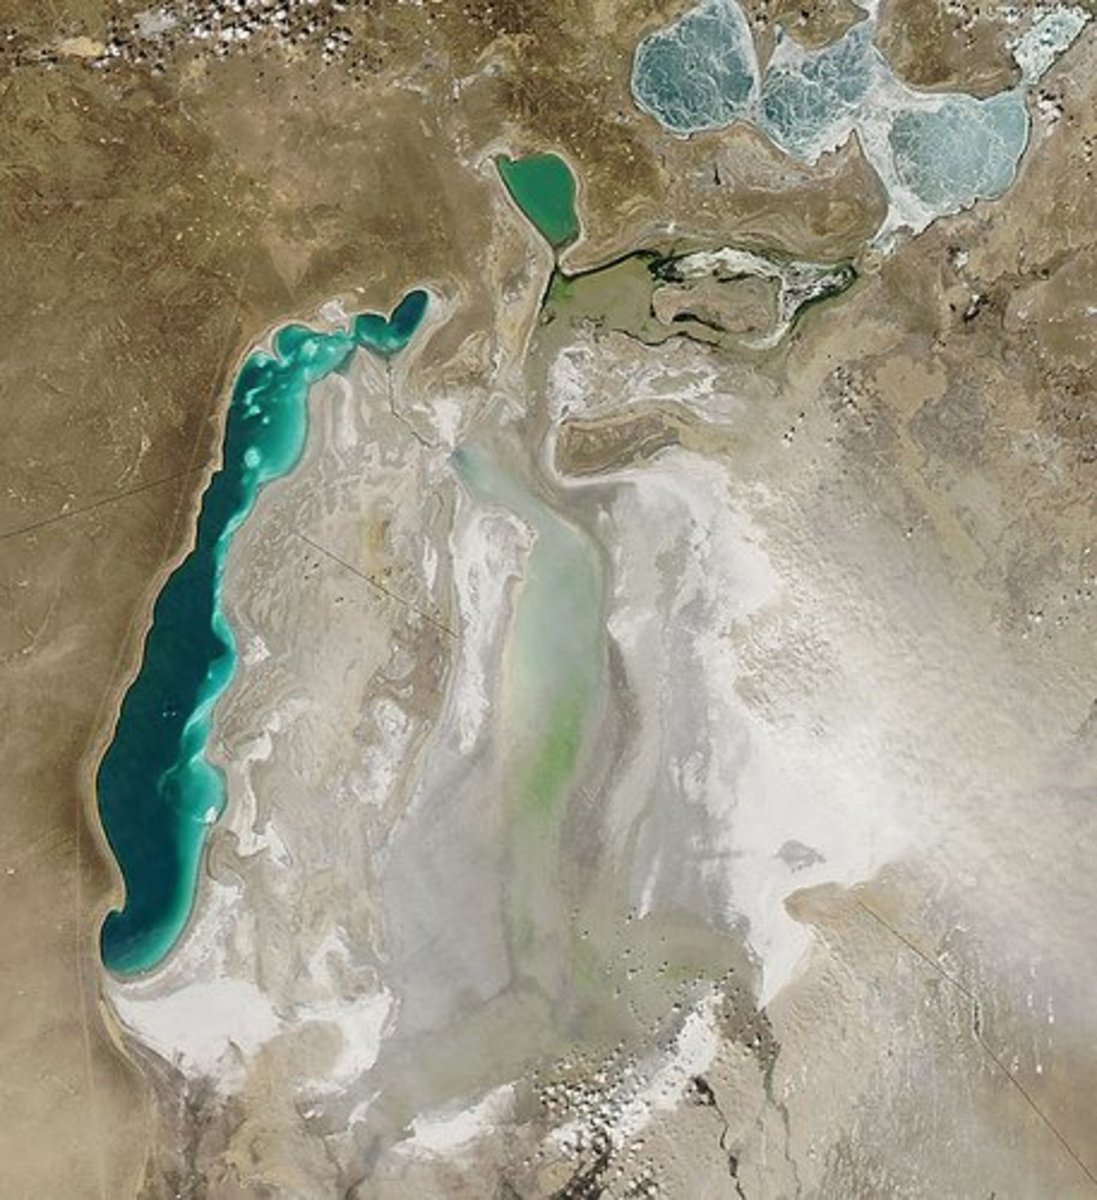 Satellite Image of the Shrinking Aral Sea